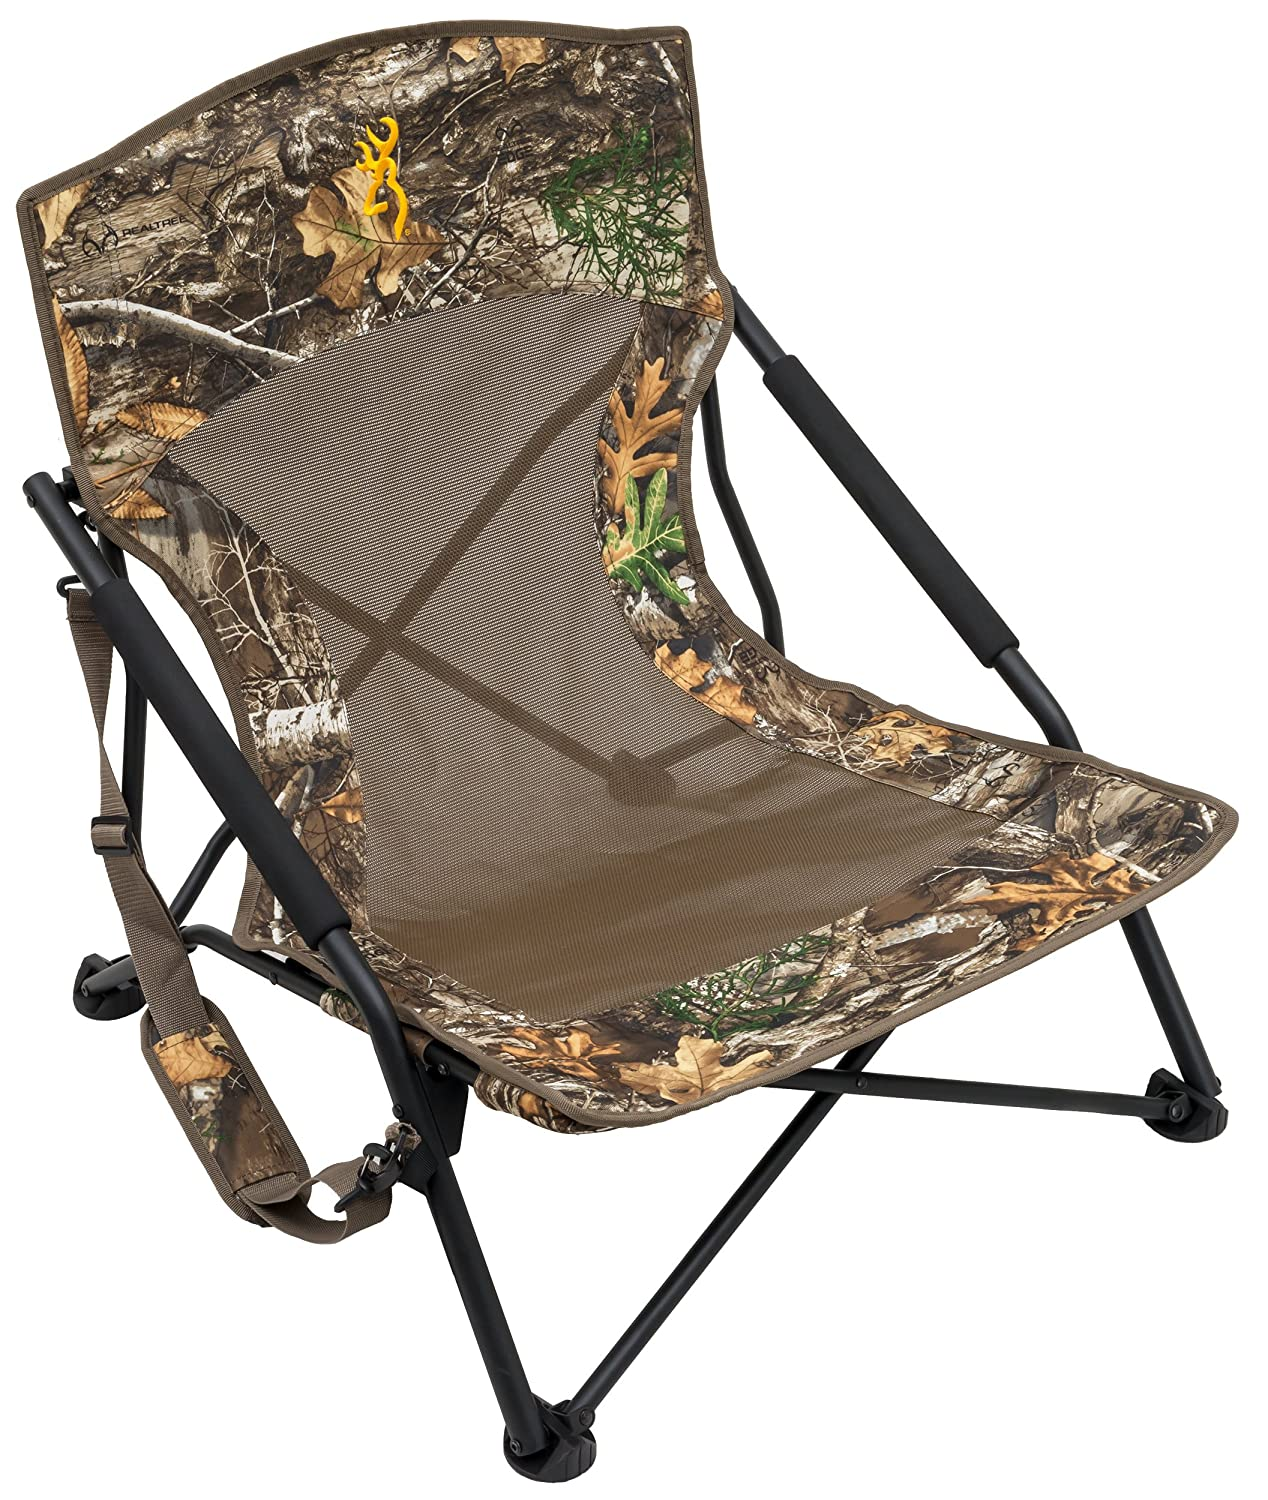 Browning Camping Strutter Chair